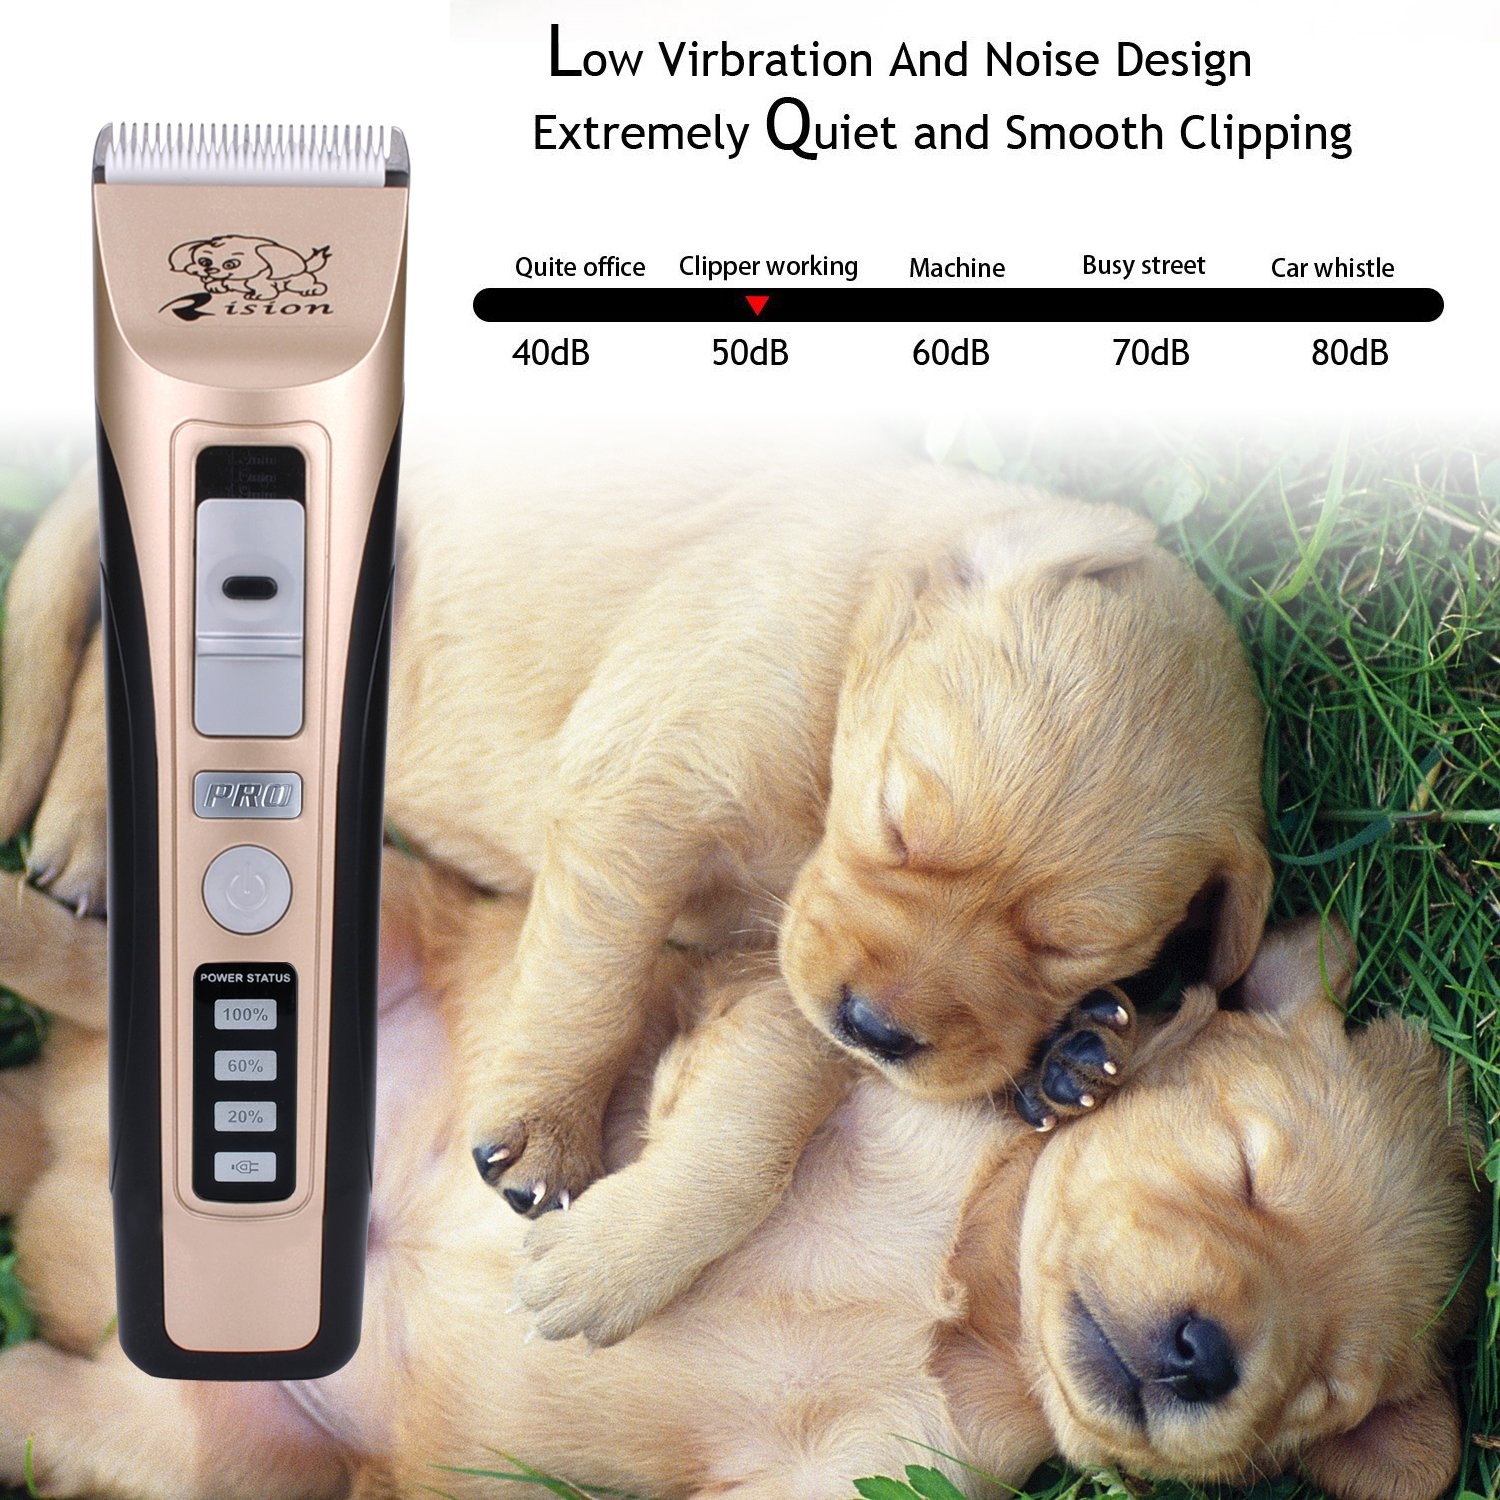 Pet Clippers, Rision Low Noise Rechargeable Cordless Dog Trimmers Professional Animal Grooming Shavers for Thick Hair Dogs, Cats, Rabbits and Horses by Rision (Image #3)